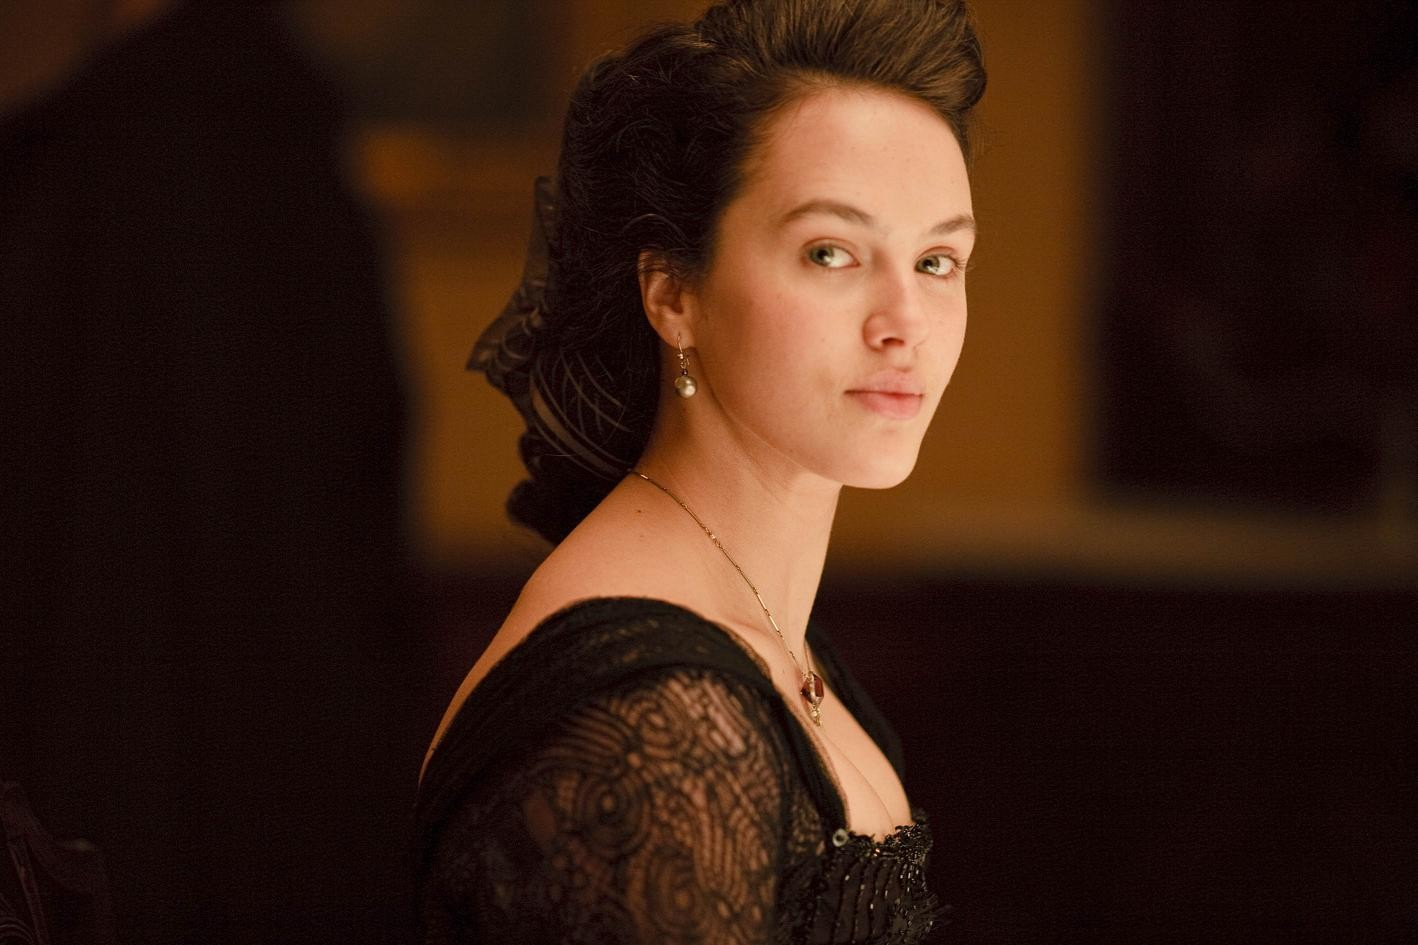 https://qfxblog.files.wordpress.com/2012/03/lady-sybil.jpg